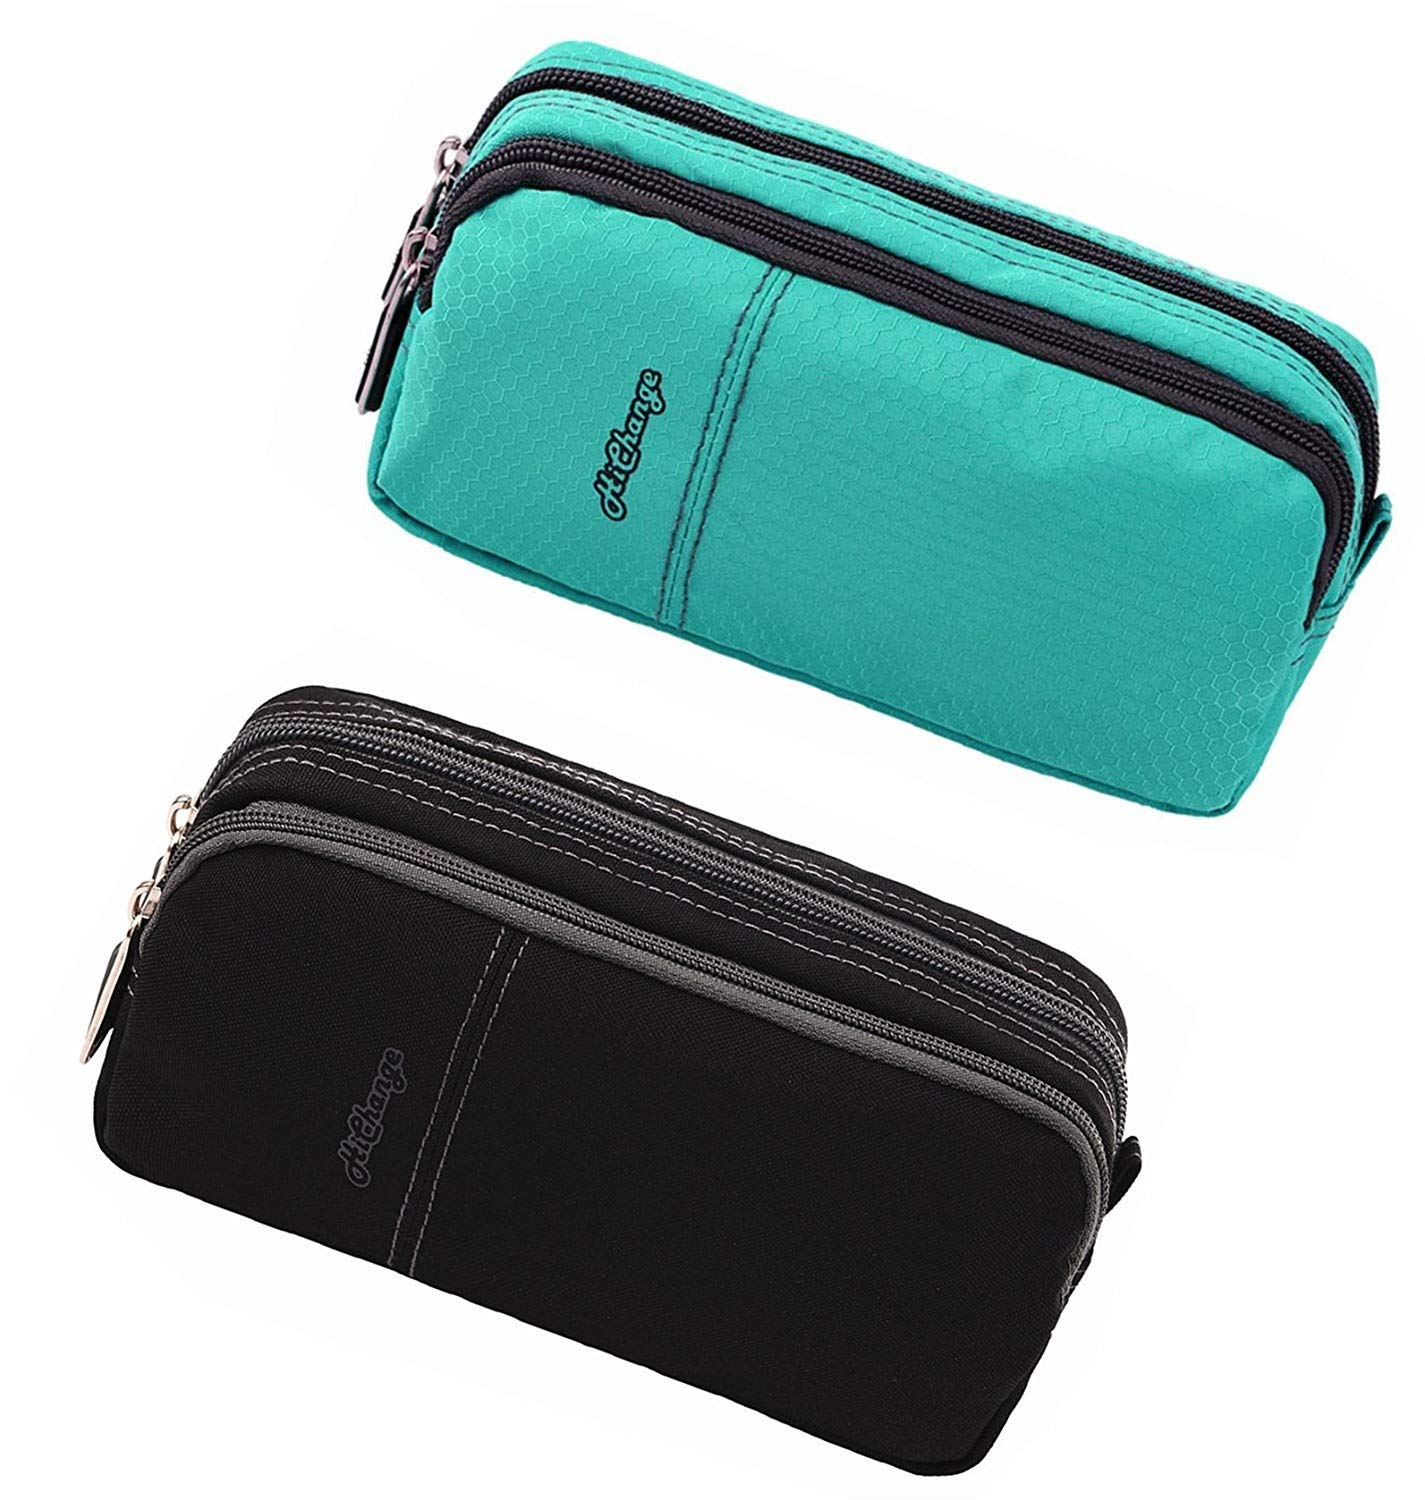 Pencil Case, Large Capacity Pencil Cases Pencil Bag with Two Compartments … (2Pack Black+Green)